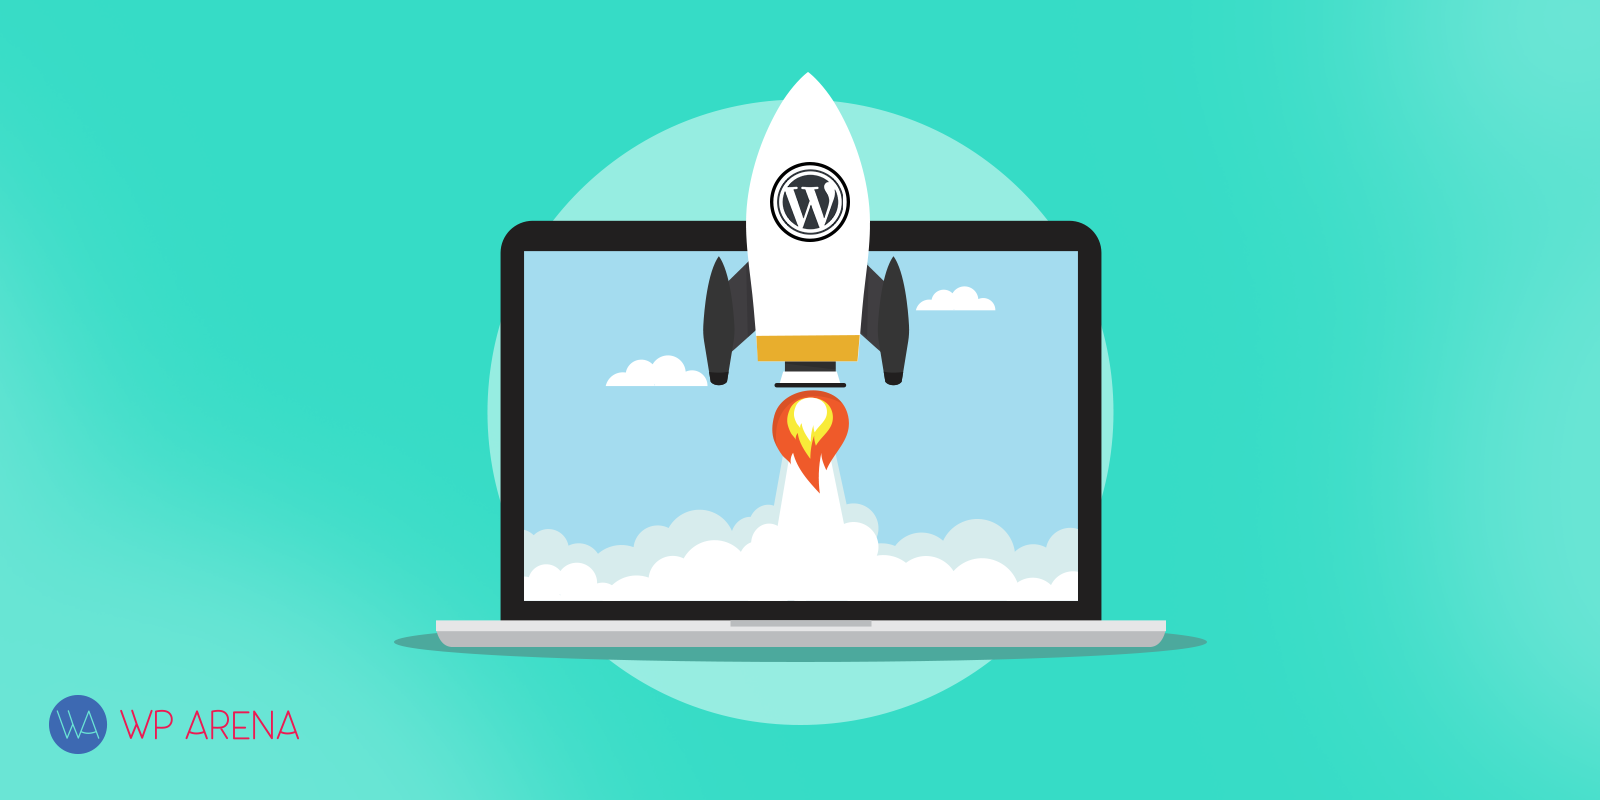 optimize your WordPress performance and traffic